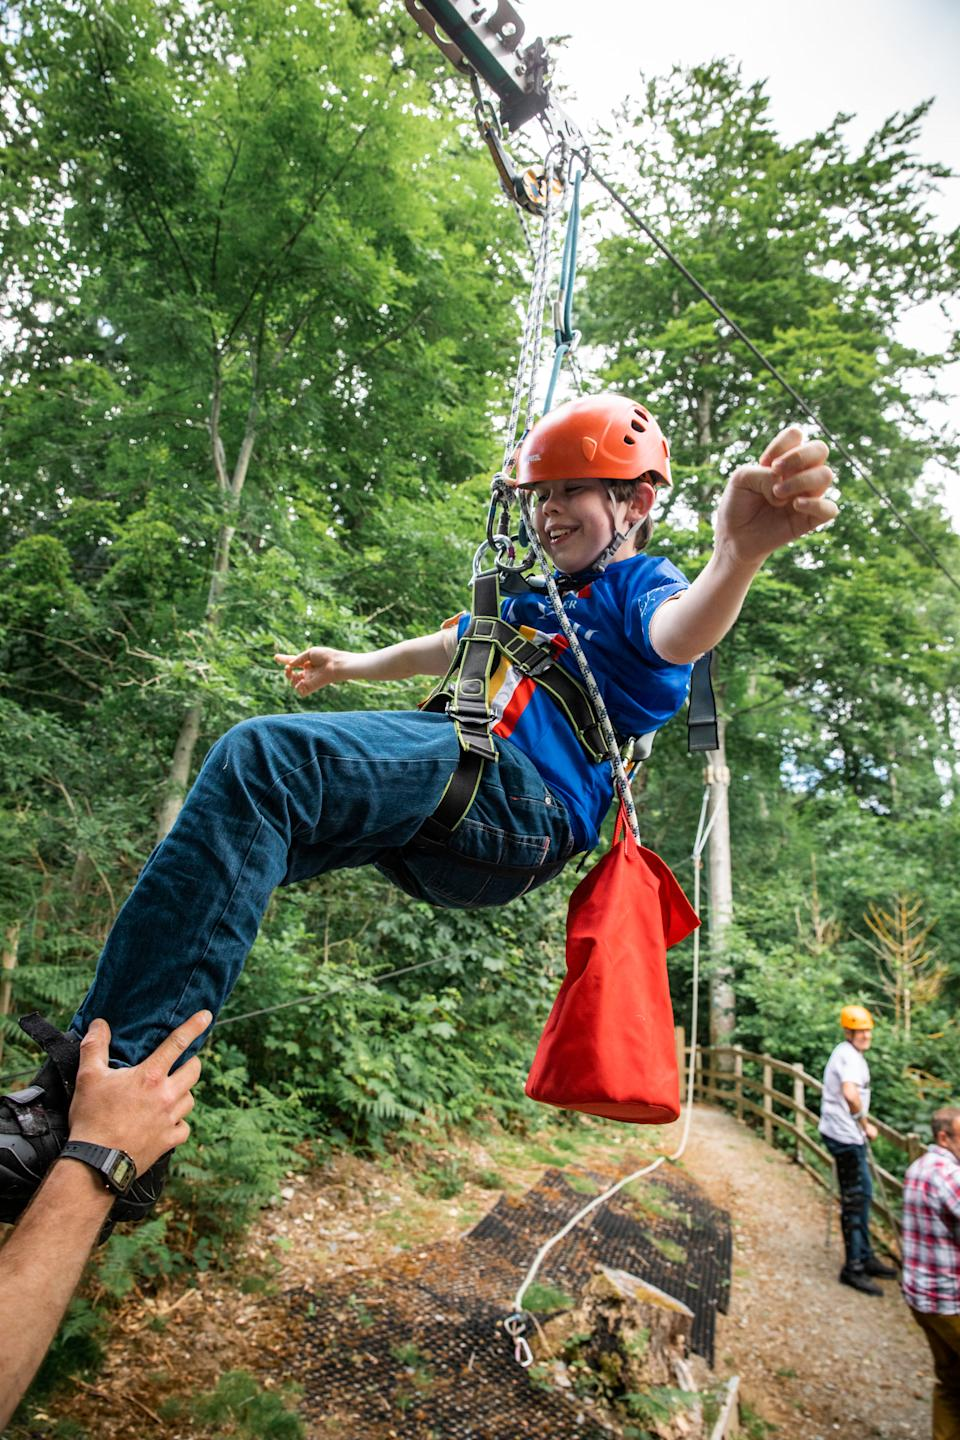 Celebrating completing the zip wire and raising £250,000 (Supplied)